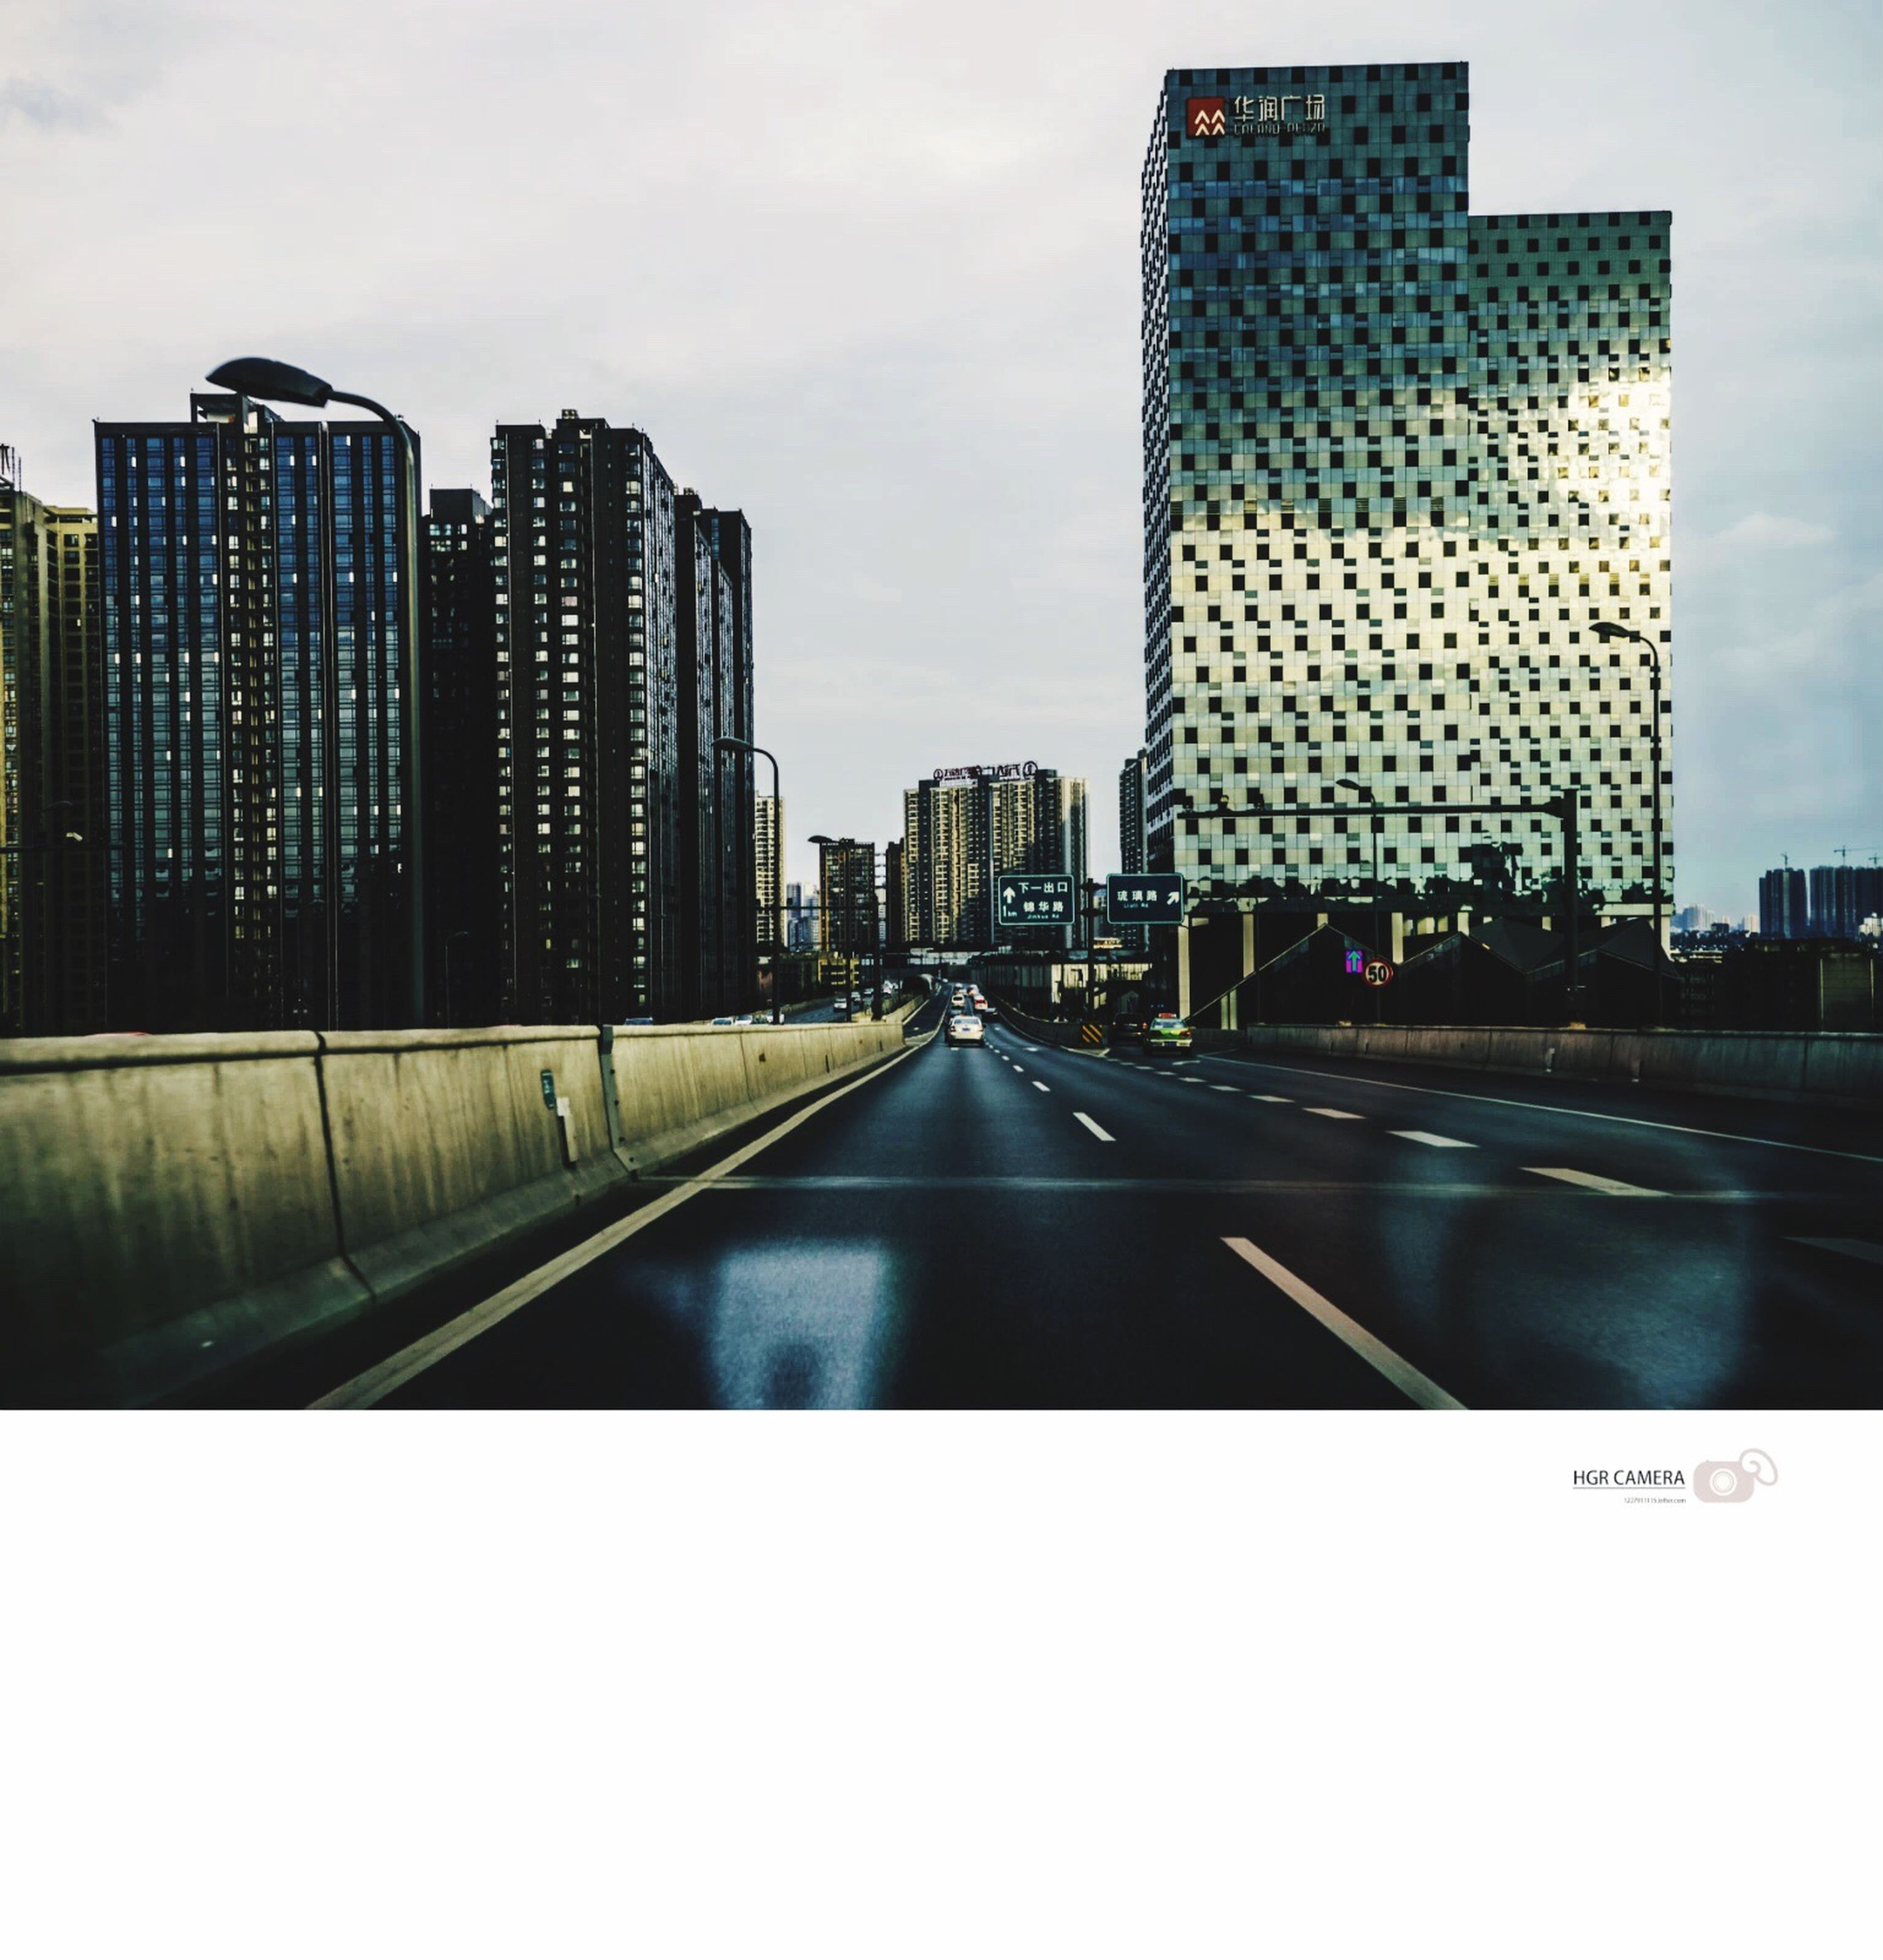 building exterior, architecture, city, built structure, skyscraper, transportation, office building, modern, the way forward, sky, tall - high, tower, diminishing perspective, road, street, car, building, vanishing point, cityscape, city life